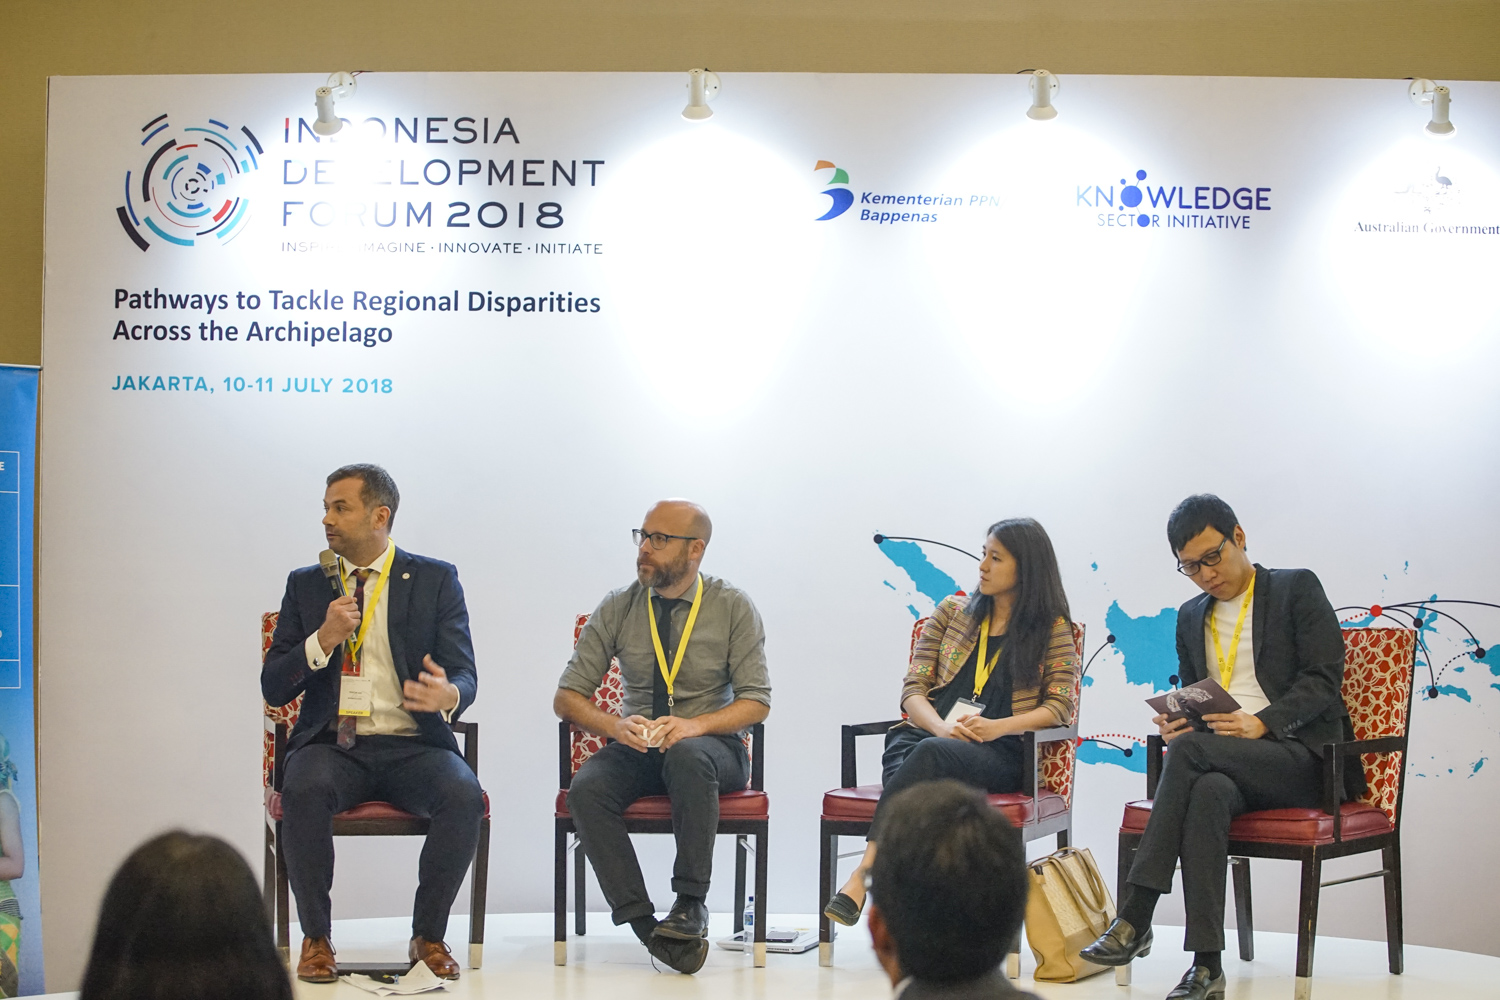 Special Session VII: Narrowing the Gaps at the Periphery by Harnessing the Potential of Social and Creative Economy (British Council)